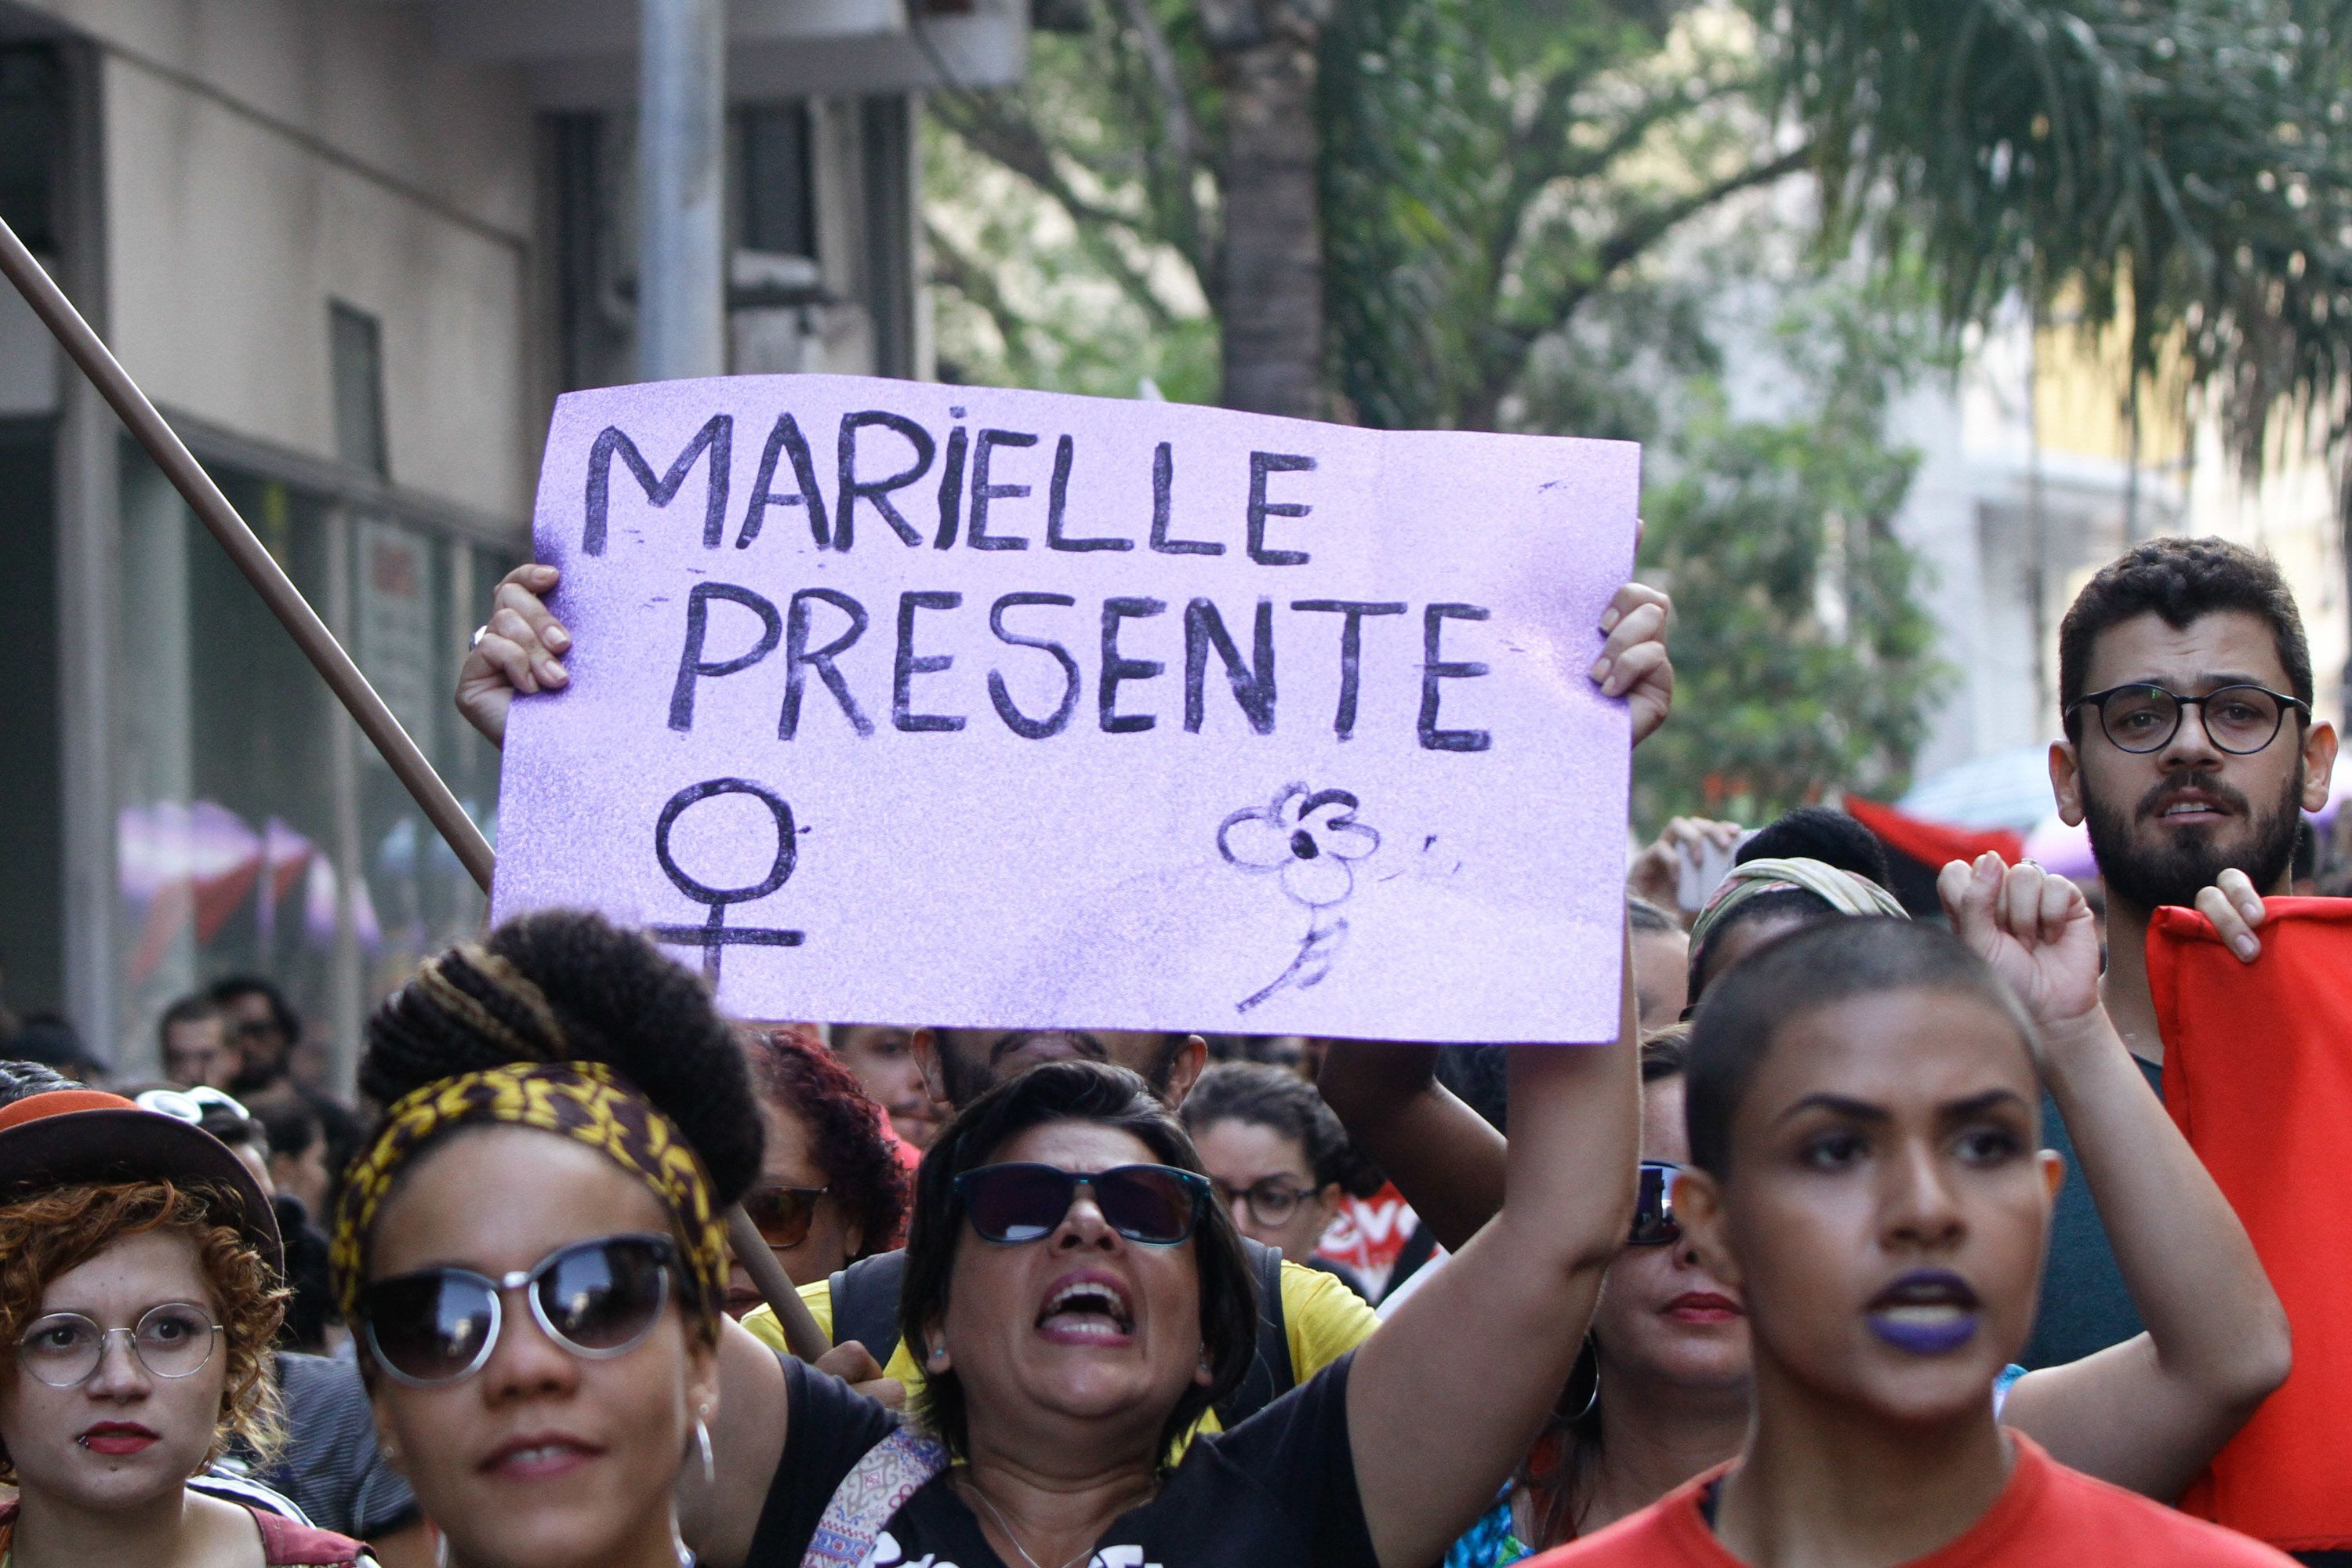 Demonstrators carry out act after Councillor Marielle Franco on Paulista Avenue in Sao Paulo, on Sunday, 18 March 2018. Marielle Franco and your driver Anderson Pedro Gomes, were shot dead on Wednesday night 14 March 2018, in the central region of the city of Rio de Janeiro. (Photo by Fabio Vieira/FotoRua/NurPhoto via Getty Images)